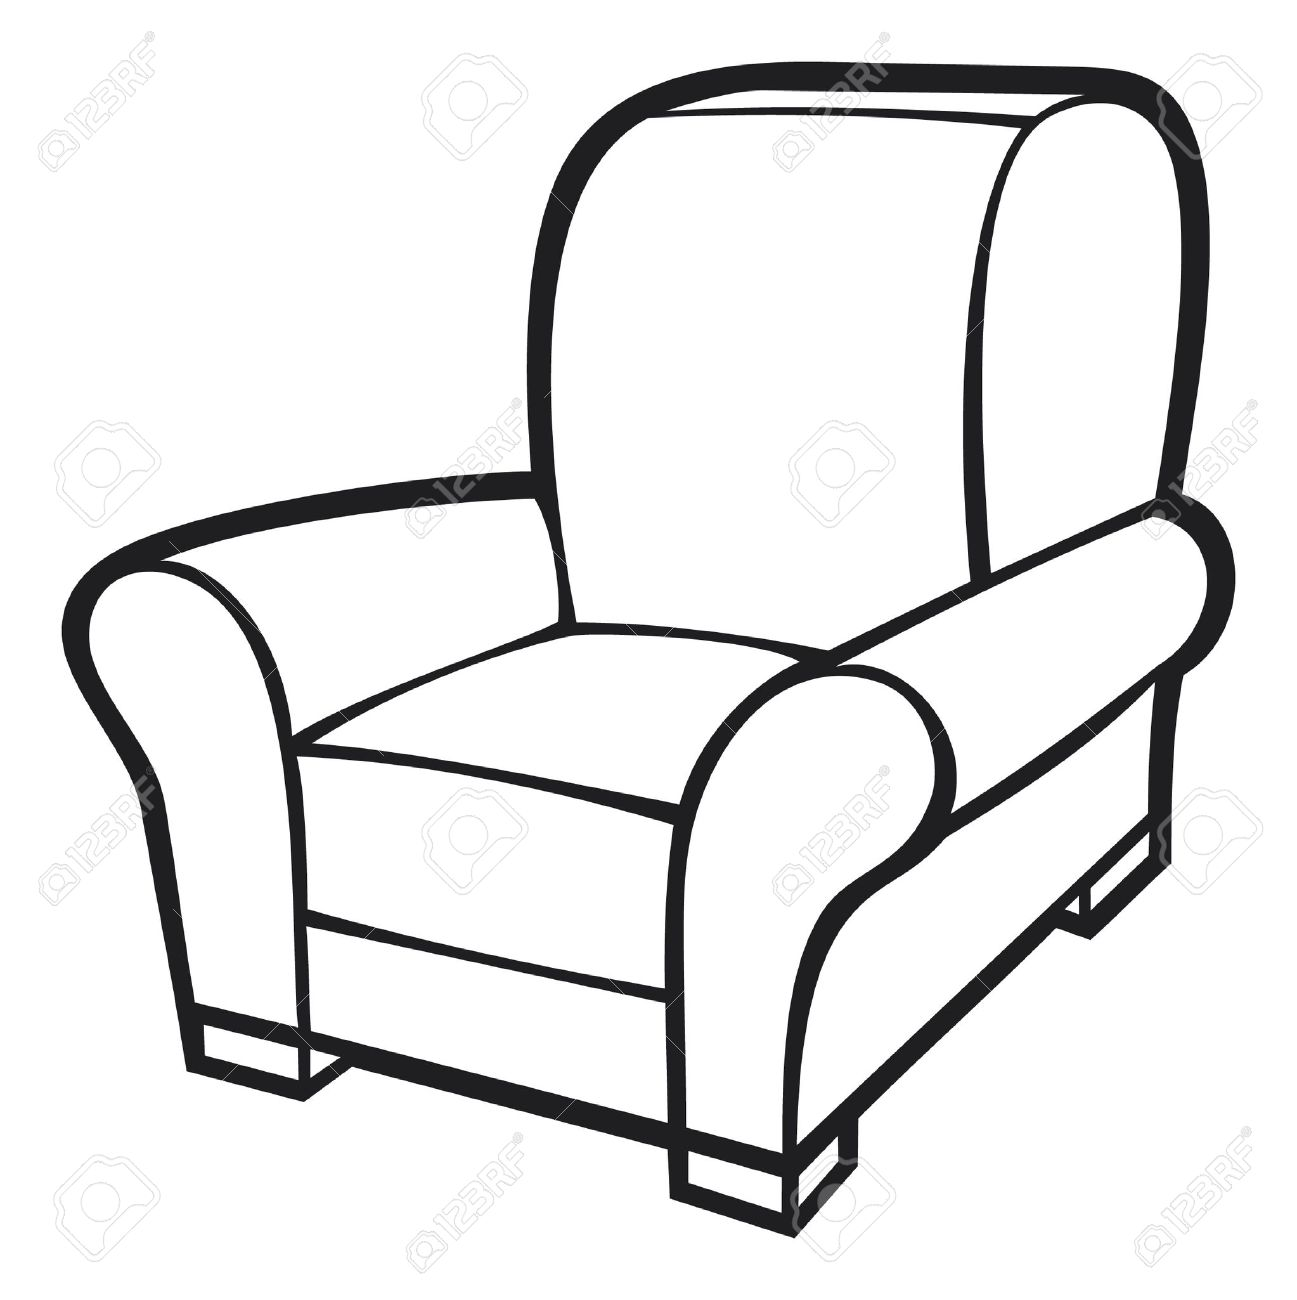 Comfy Chair Drawing Wildwoodstacom I